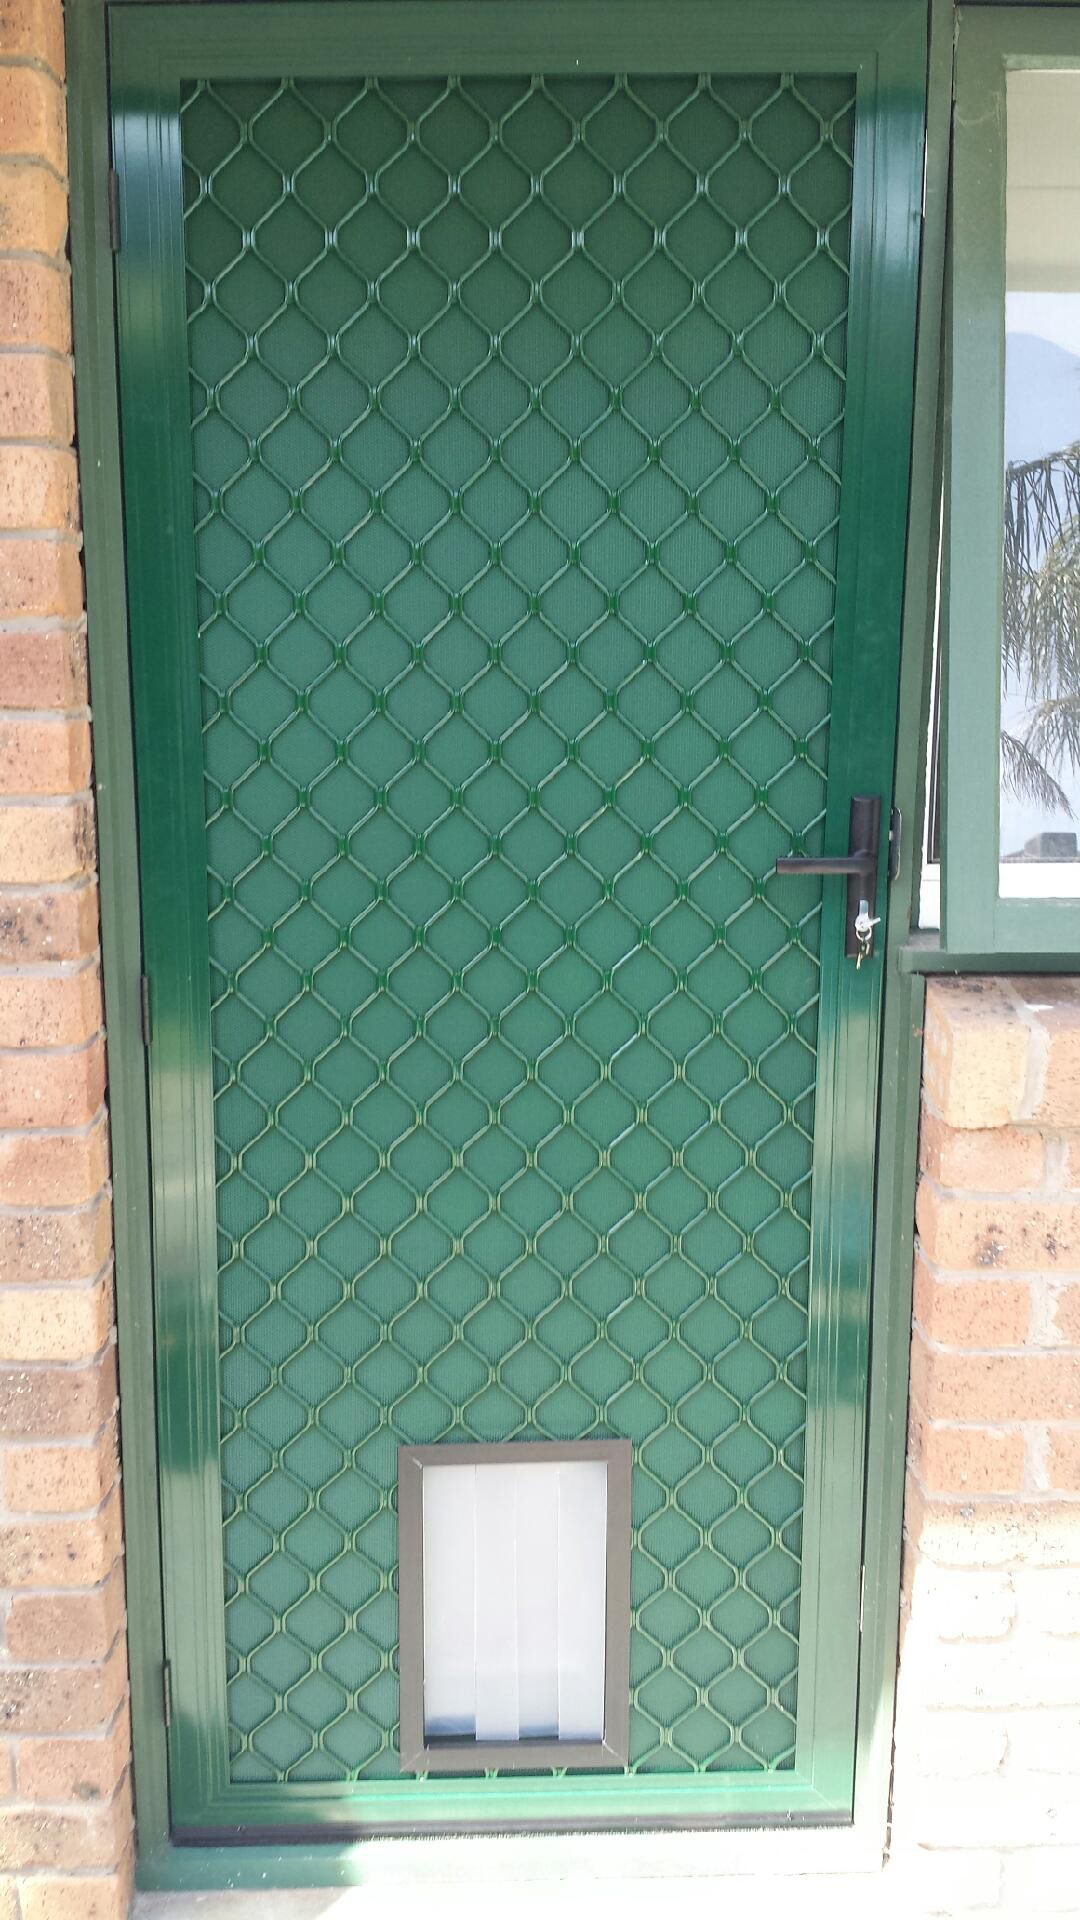 Aluminum security door with one way vision mesh, and cat